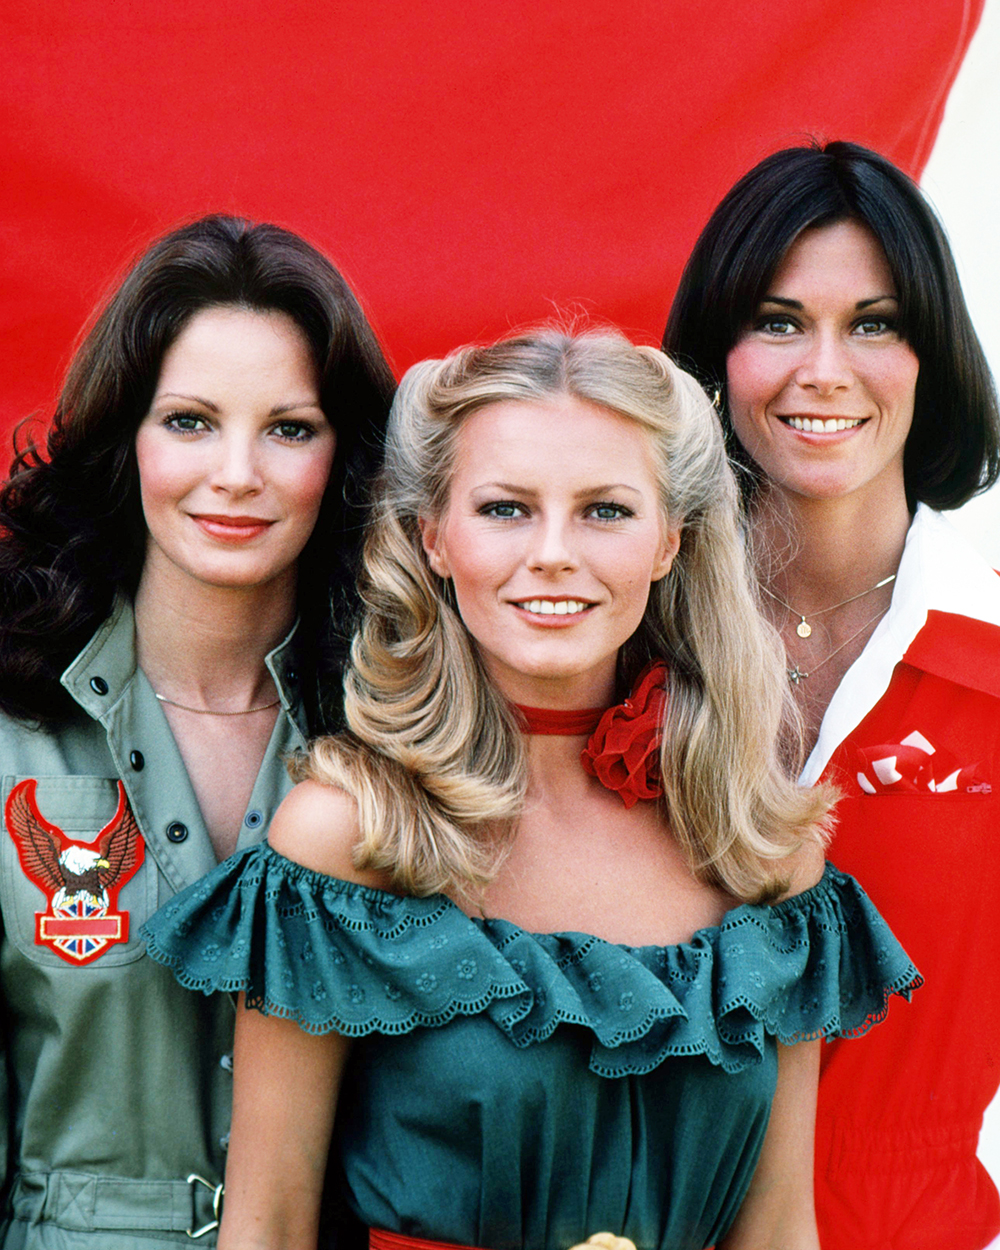 'Charlie's Angels' star Cheryl Ladd reveals her favorite memories from the set, surprising new role